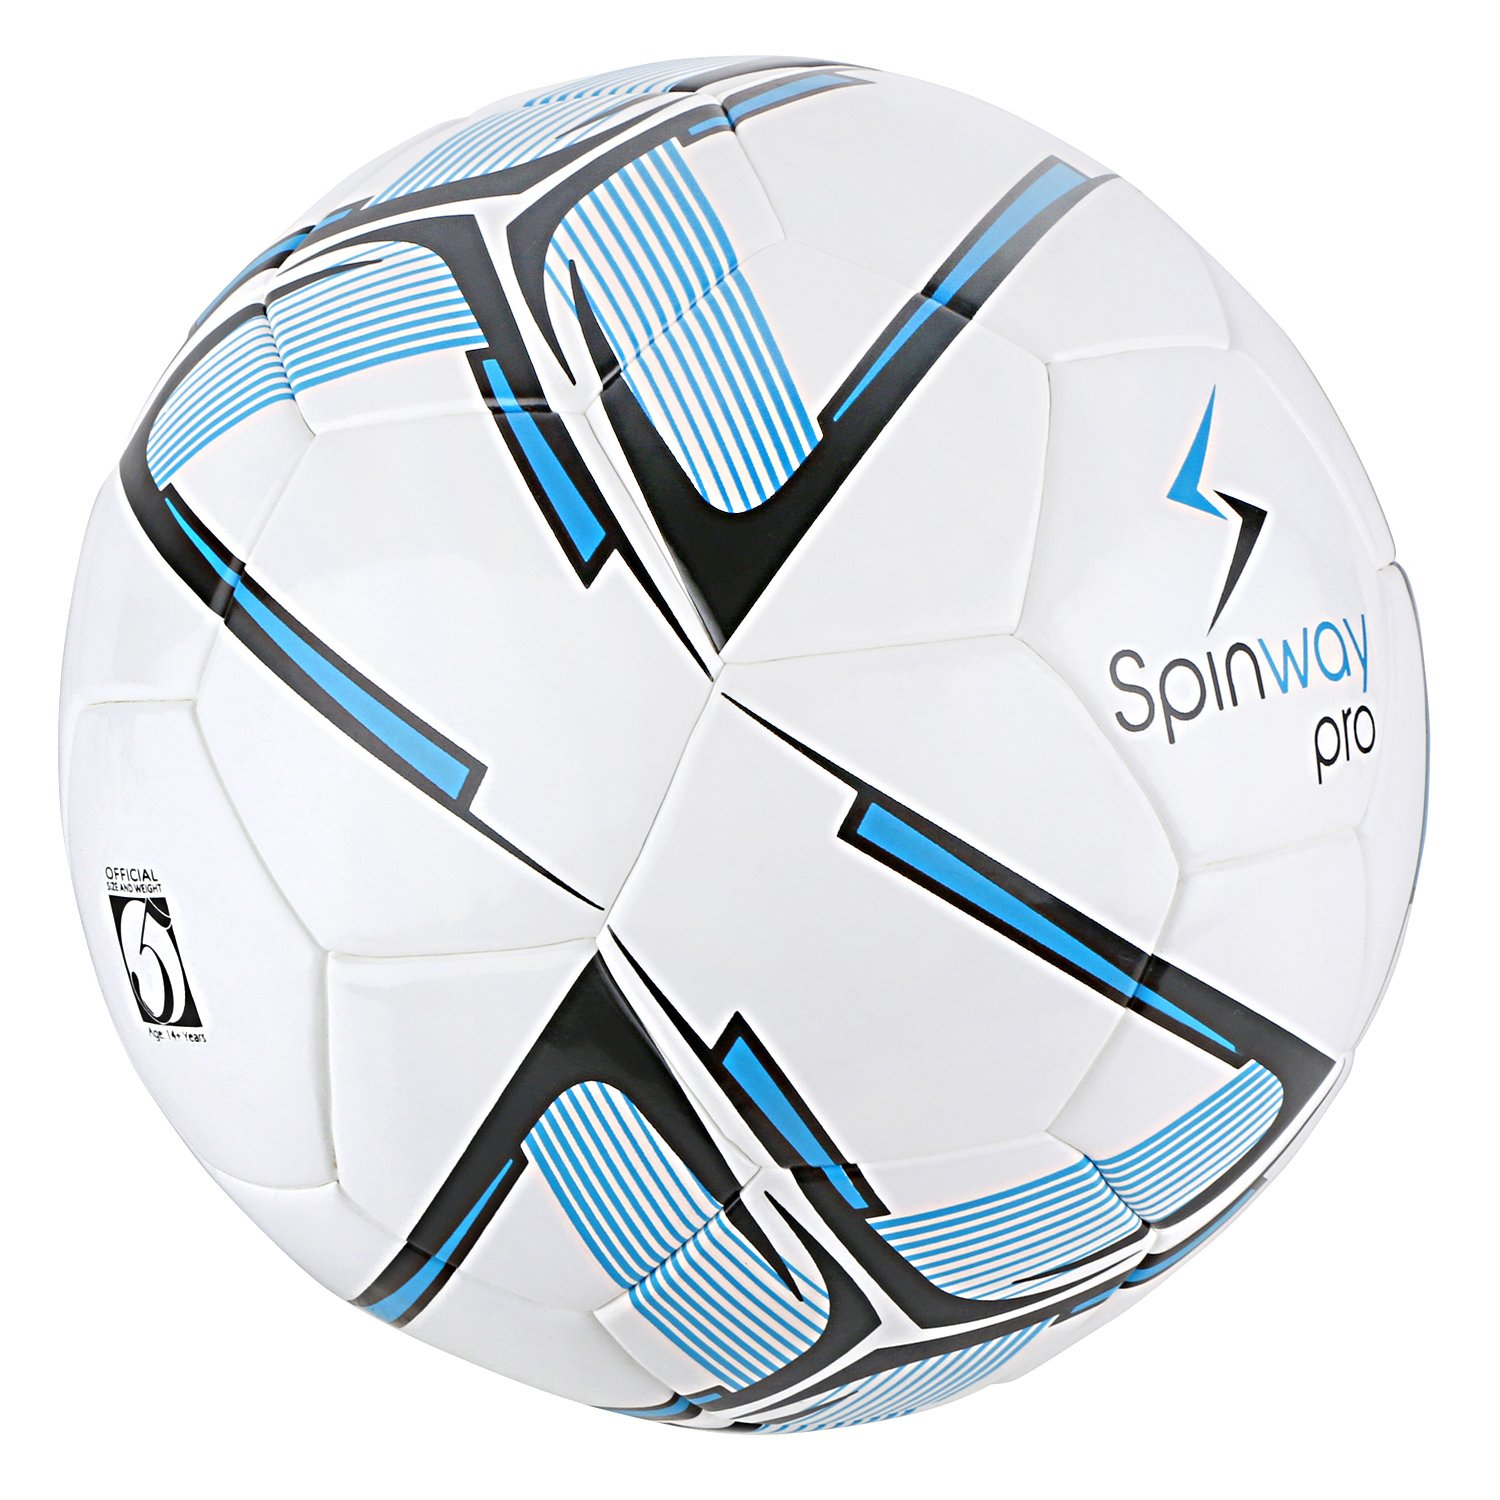 Spinway Football Pro Sw-500 for Professional Play,Water Resistant | (Blue) by Spinway (Image #2)